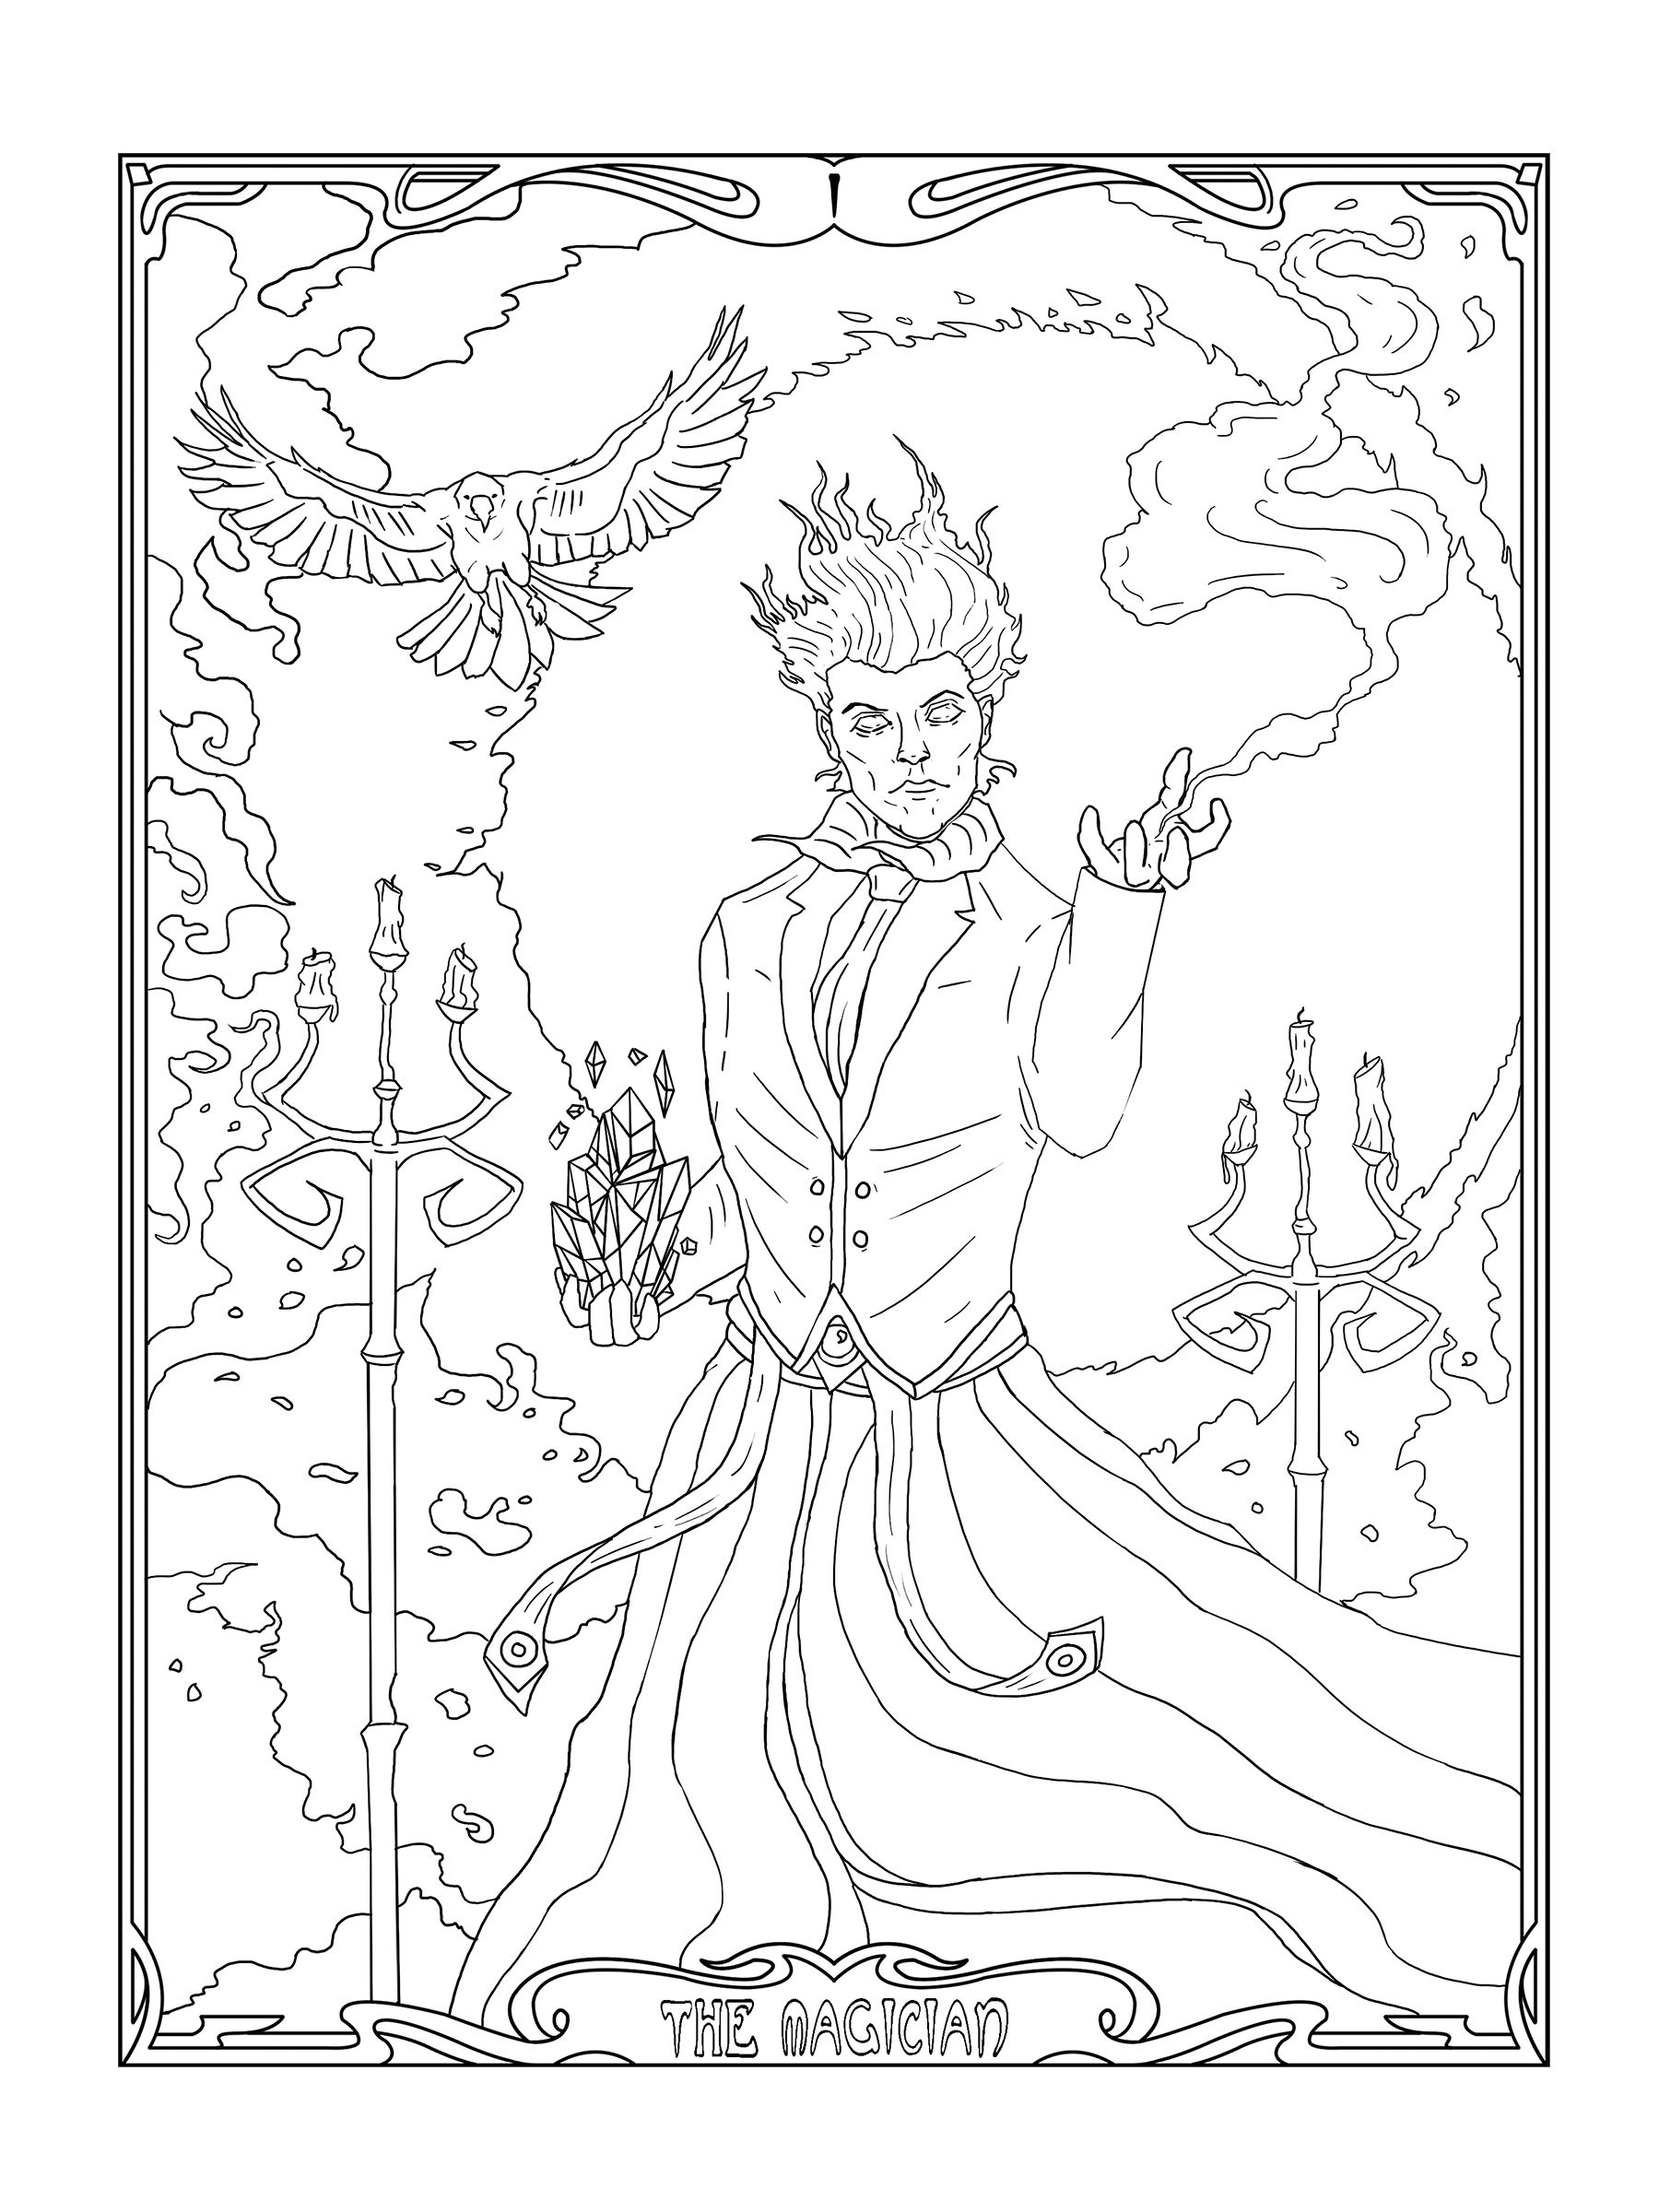 tarot coloring pages The Magician, Mage, Magic, Art Nouveau, Coloring Pages, Printable  tarot coloring pages